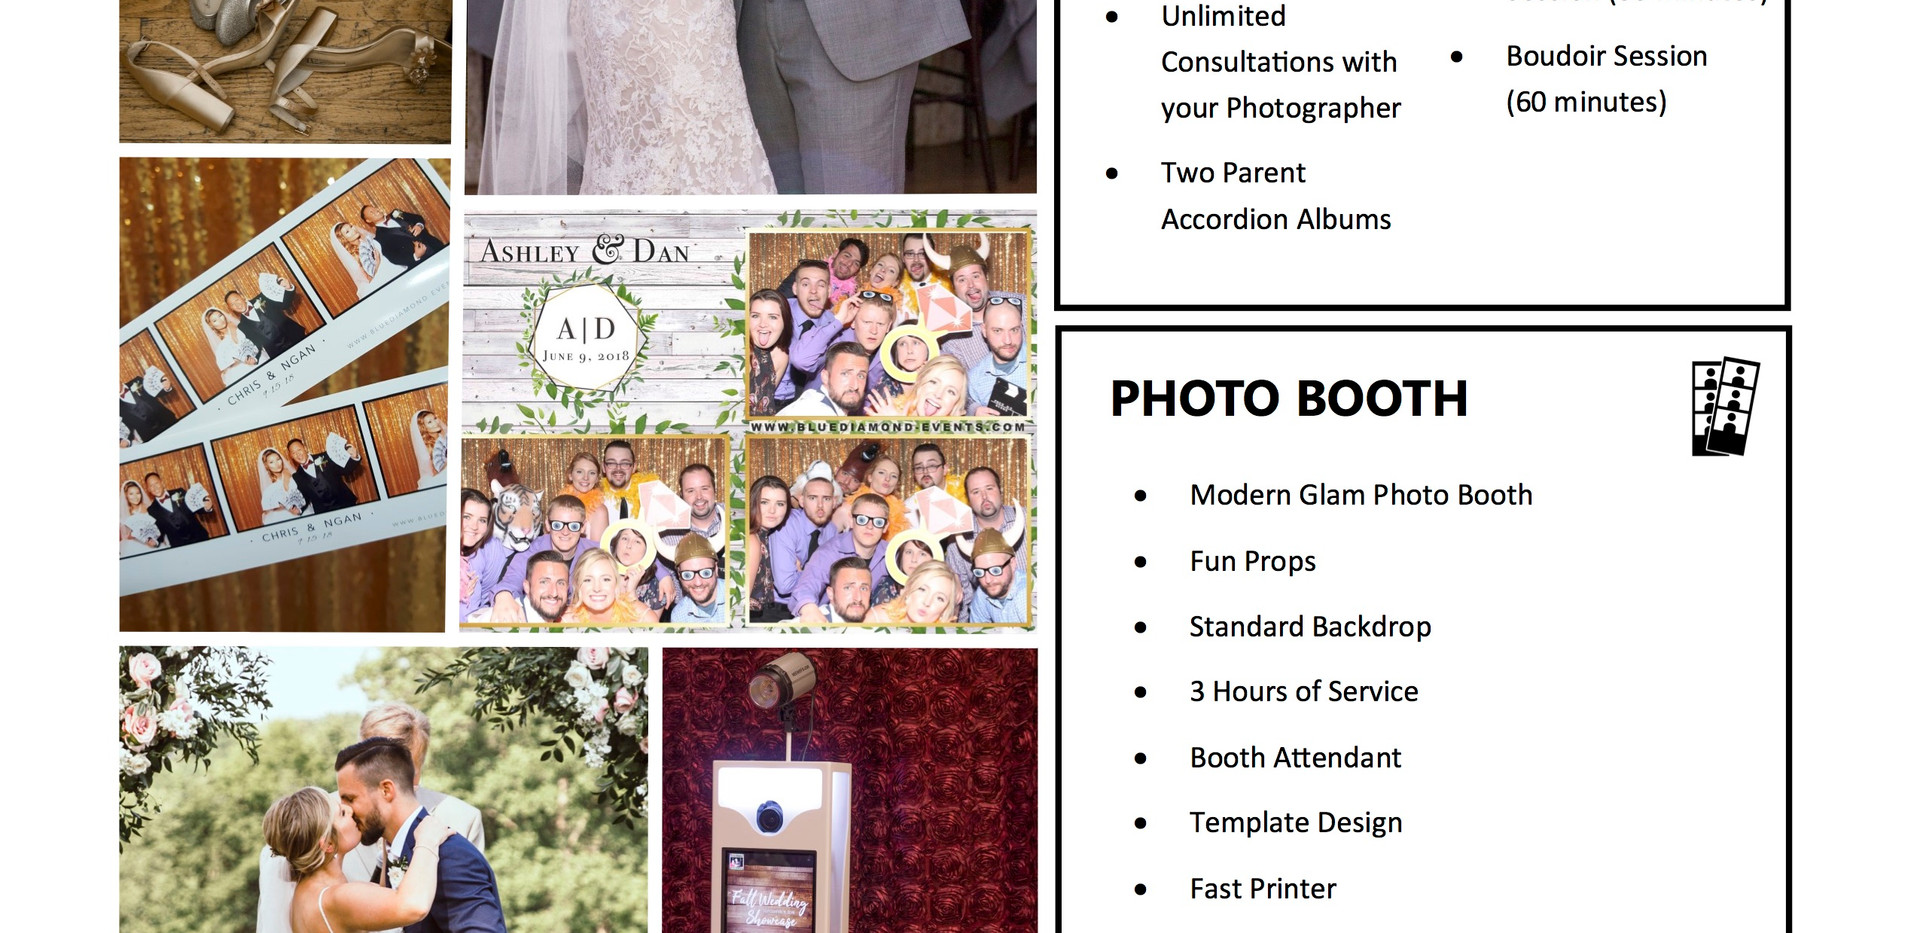 Wedding photography Photo booth Bundle Blue Diamond Events columbia mo